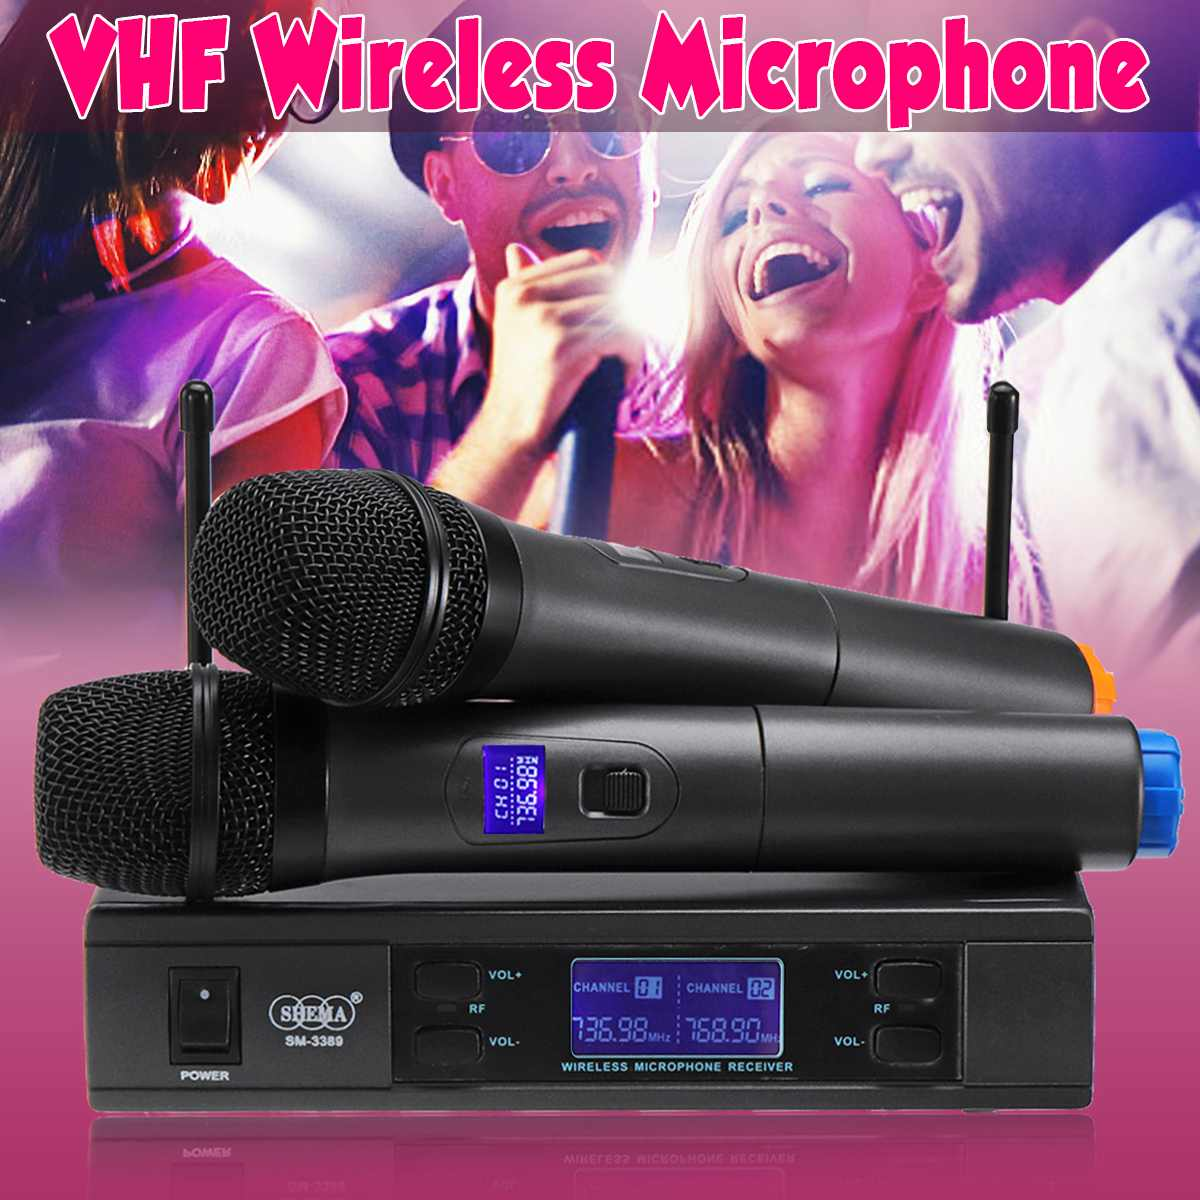 UHF Wireless Microphone System LCD Dual Mic Handheld Cordless Stage KTV Kareoke Wide Frequency Adouble-way 2 Channels Wide RangeUHF Wireless Microphone System LCD Dual Mic Handheld Cordless Stage KTV Kareoke Wide Frequency Adouble-way 2 Channels Wide Range